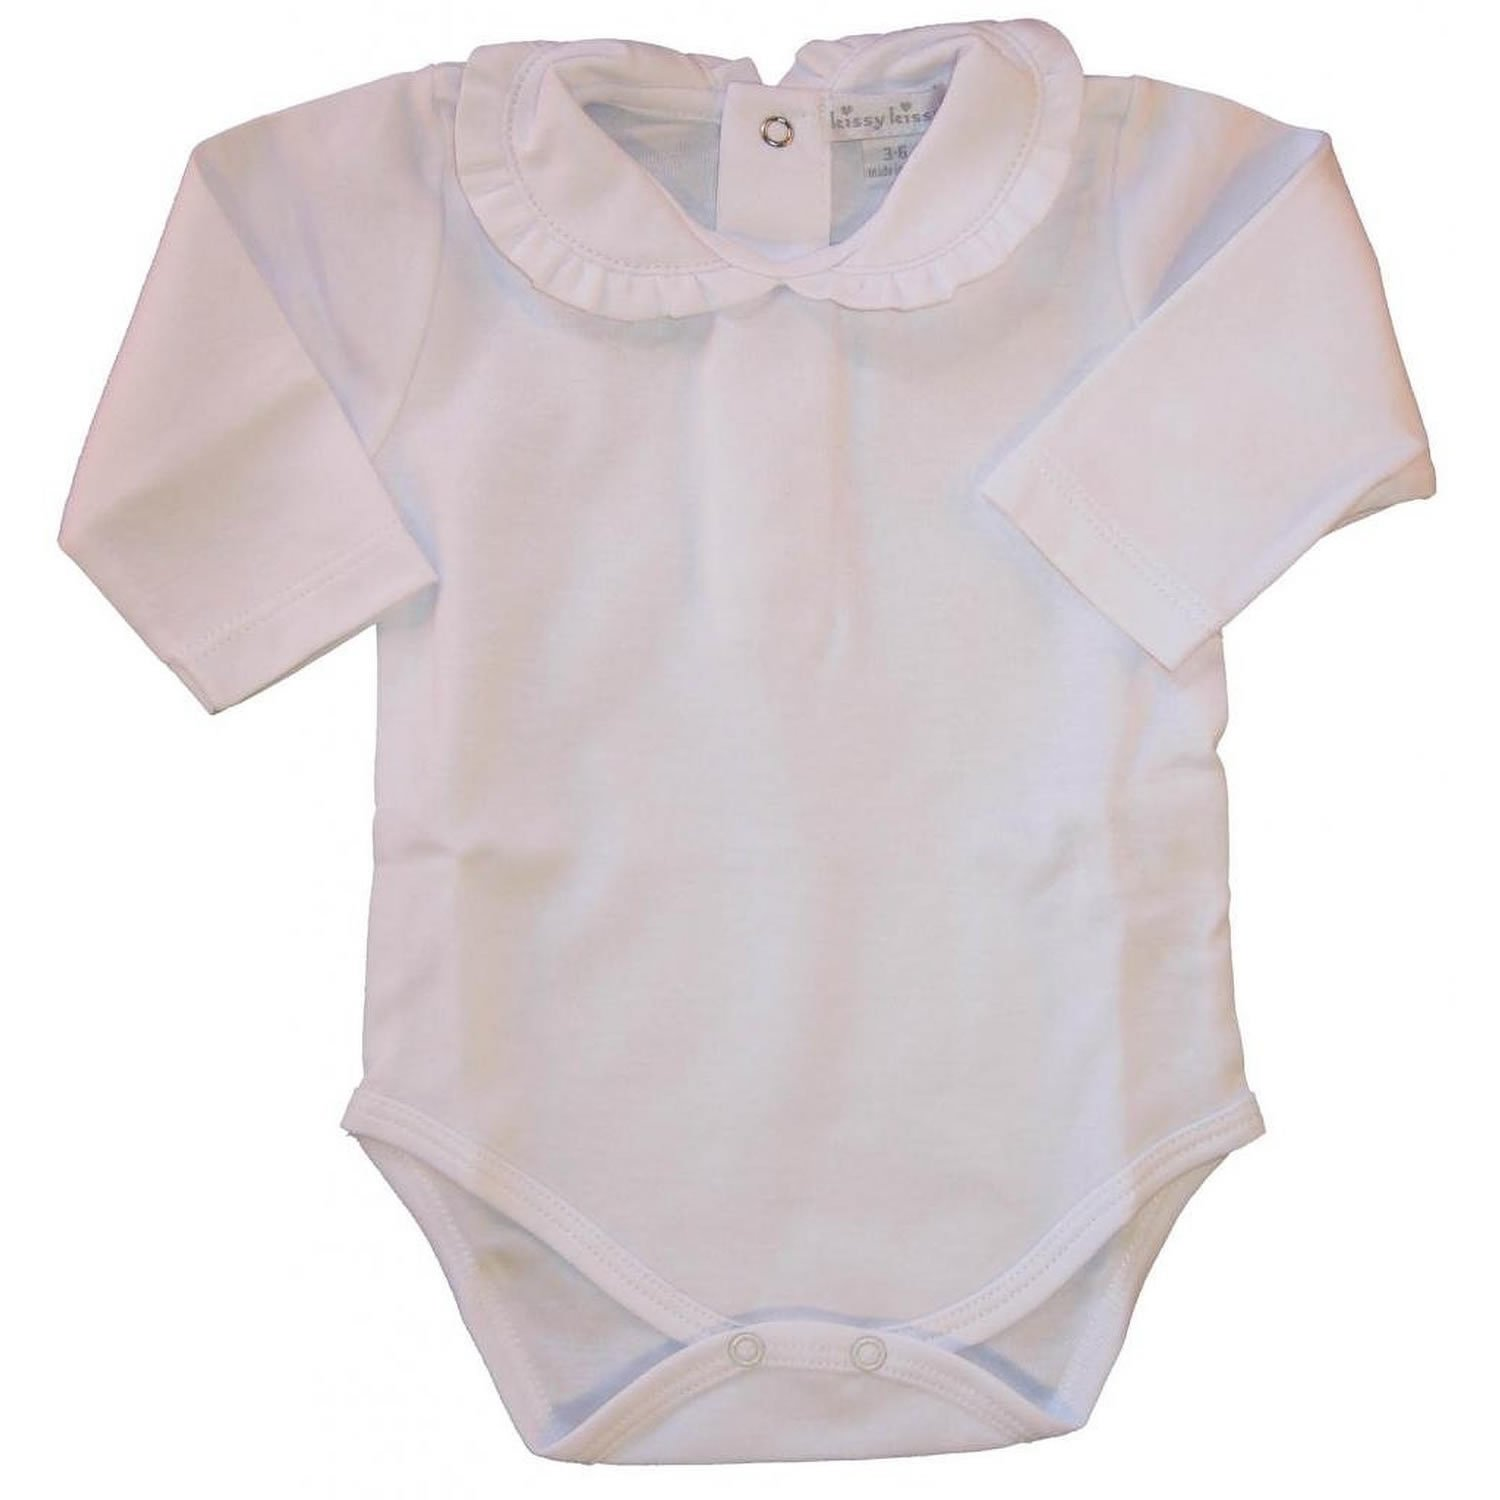 Kissy Kissy Baby Basic Long Sleeve Collared Bodysuit With Ruffle Collar 346-930-WHWH